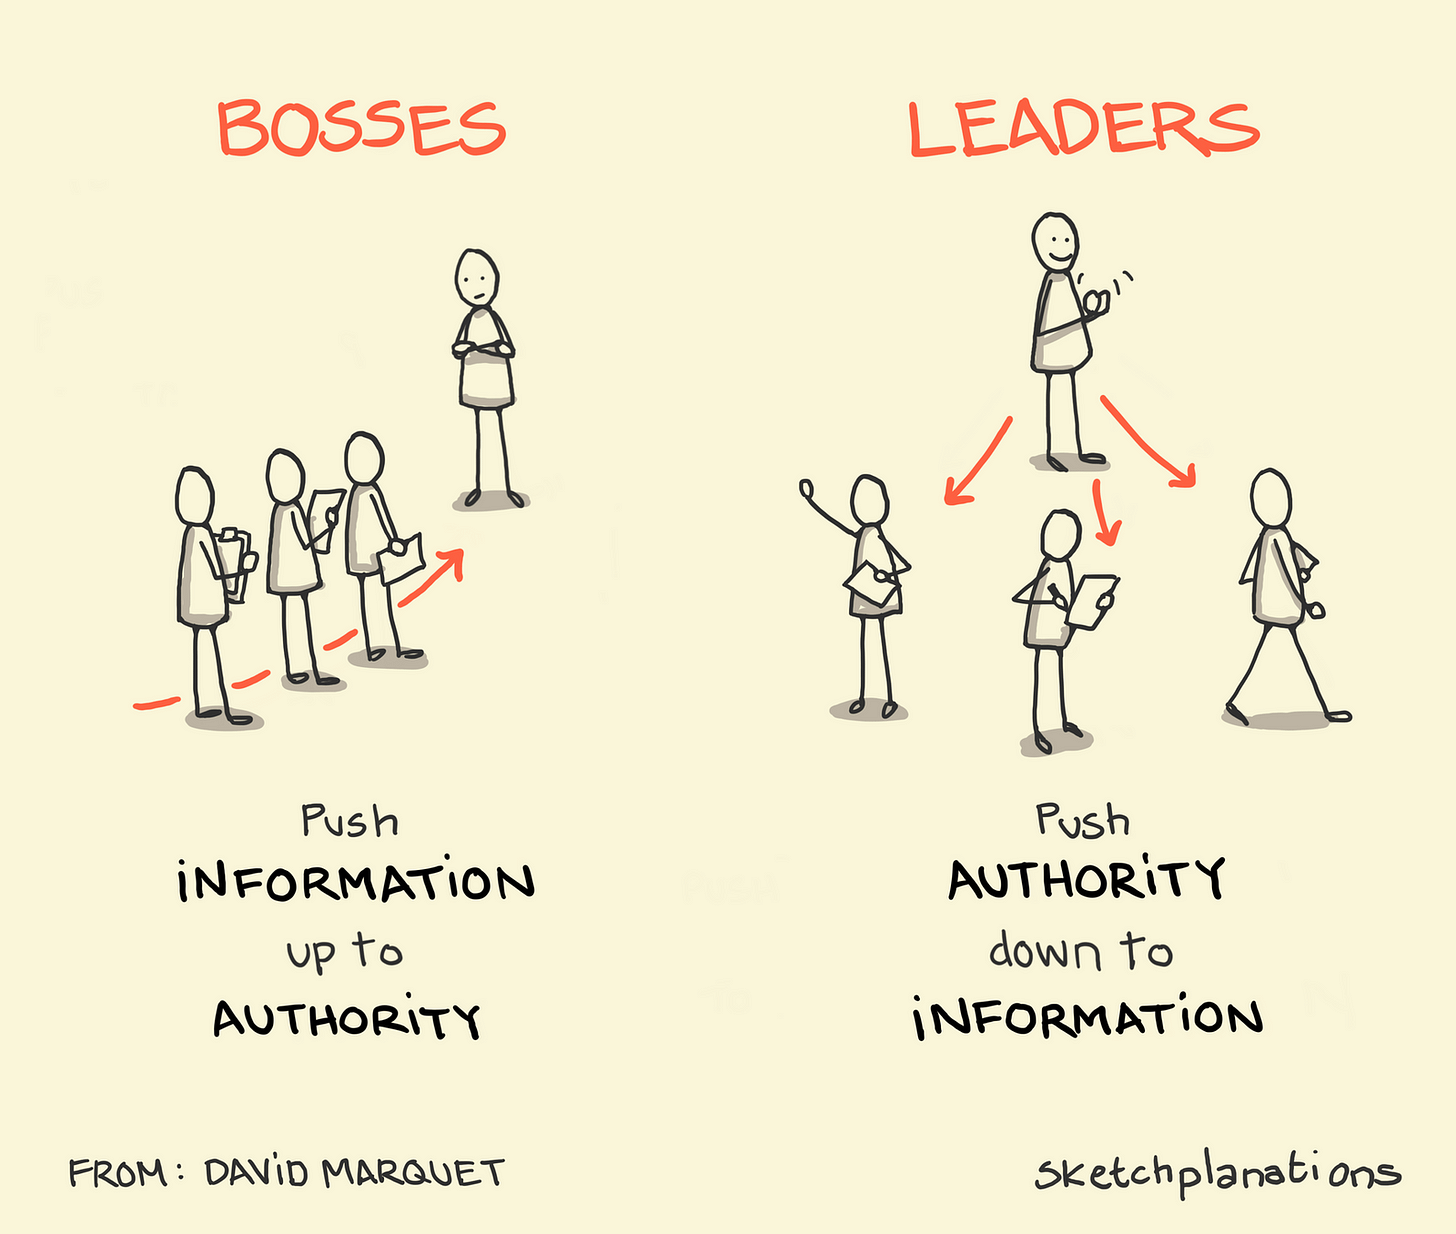 Push authority to information - Sketchplanations